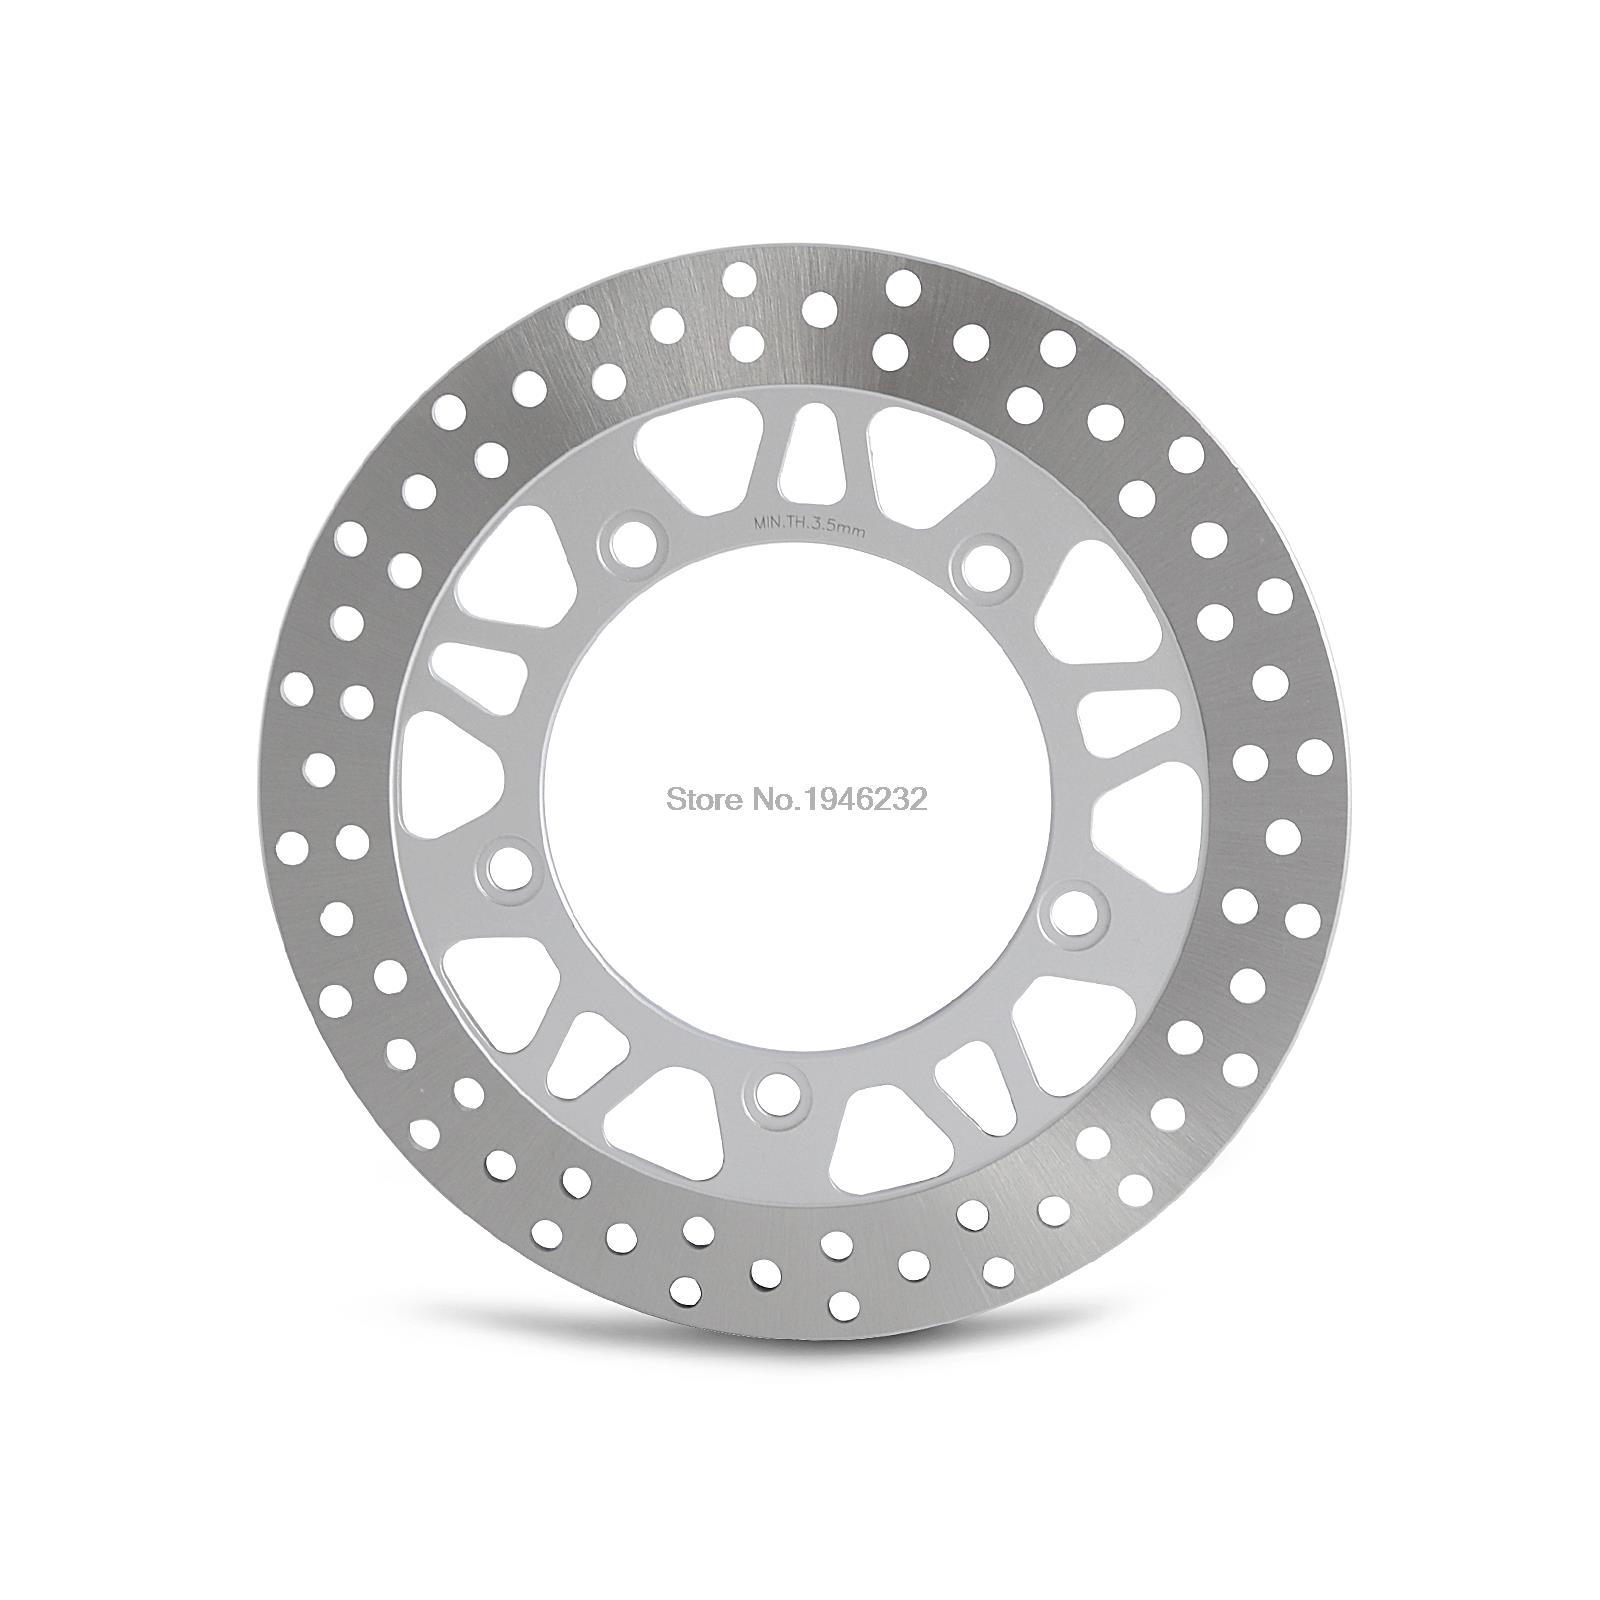 New Motorcycle Front  Rotor Brake Disc For Suzuki  AN 250  400 K7/ZK7/K8/ZK8/K9/L0/L1/L2/L3 Burgman/Non ABS/Skywave 07-13 rear brake disc rotor for yamaha fz1 non abs 06 09 fz6 naked non abs 04 07 fz6 ns naked 05 06 motorcycle